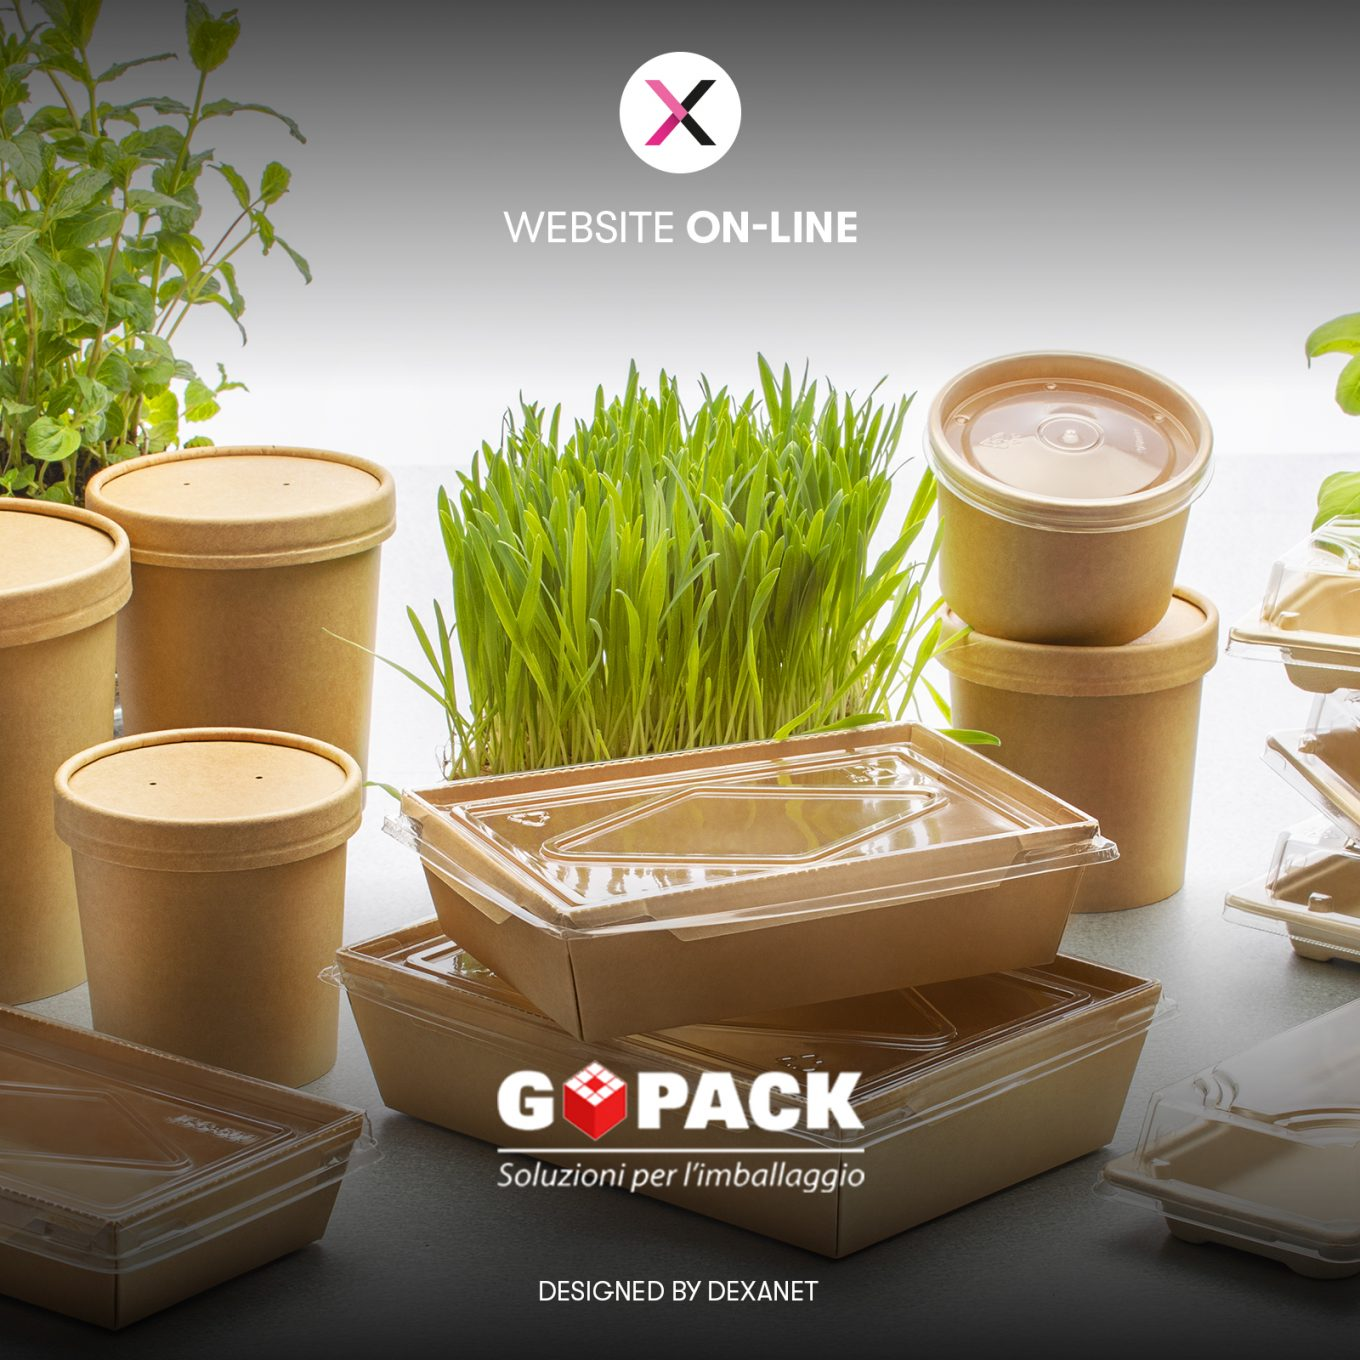 Restyling sito web GoPack